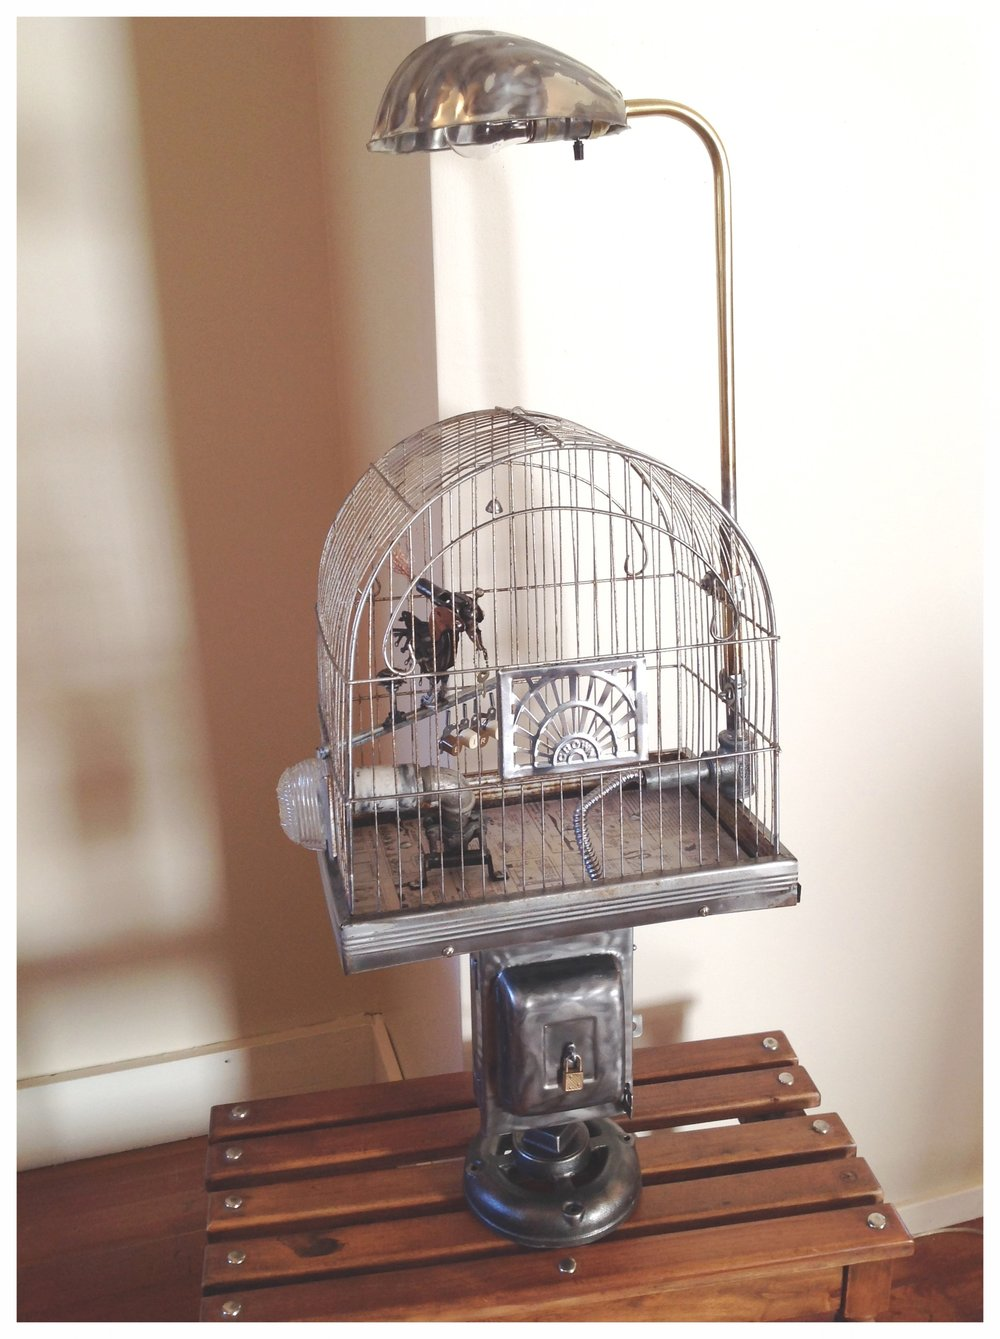 shipping lamp garden free home product birdcage dimond bamboo overstock today